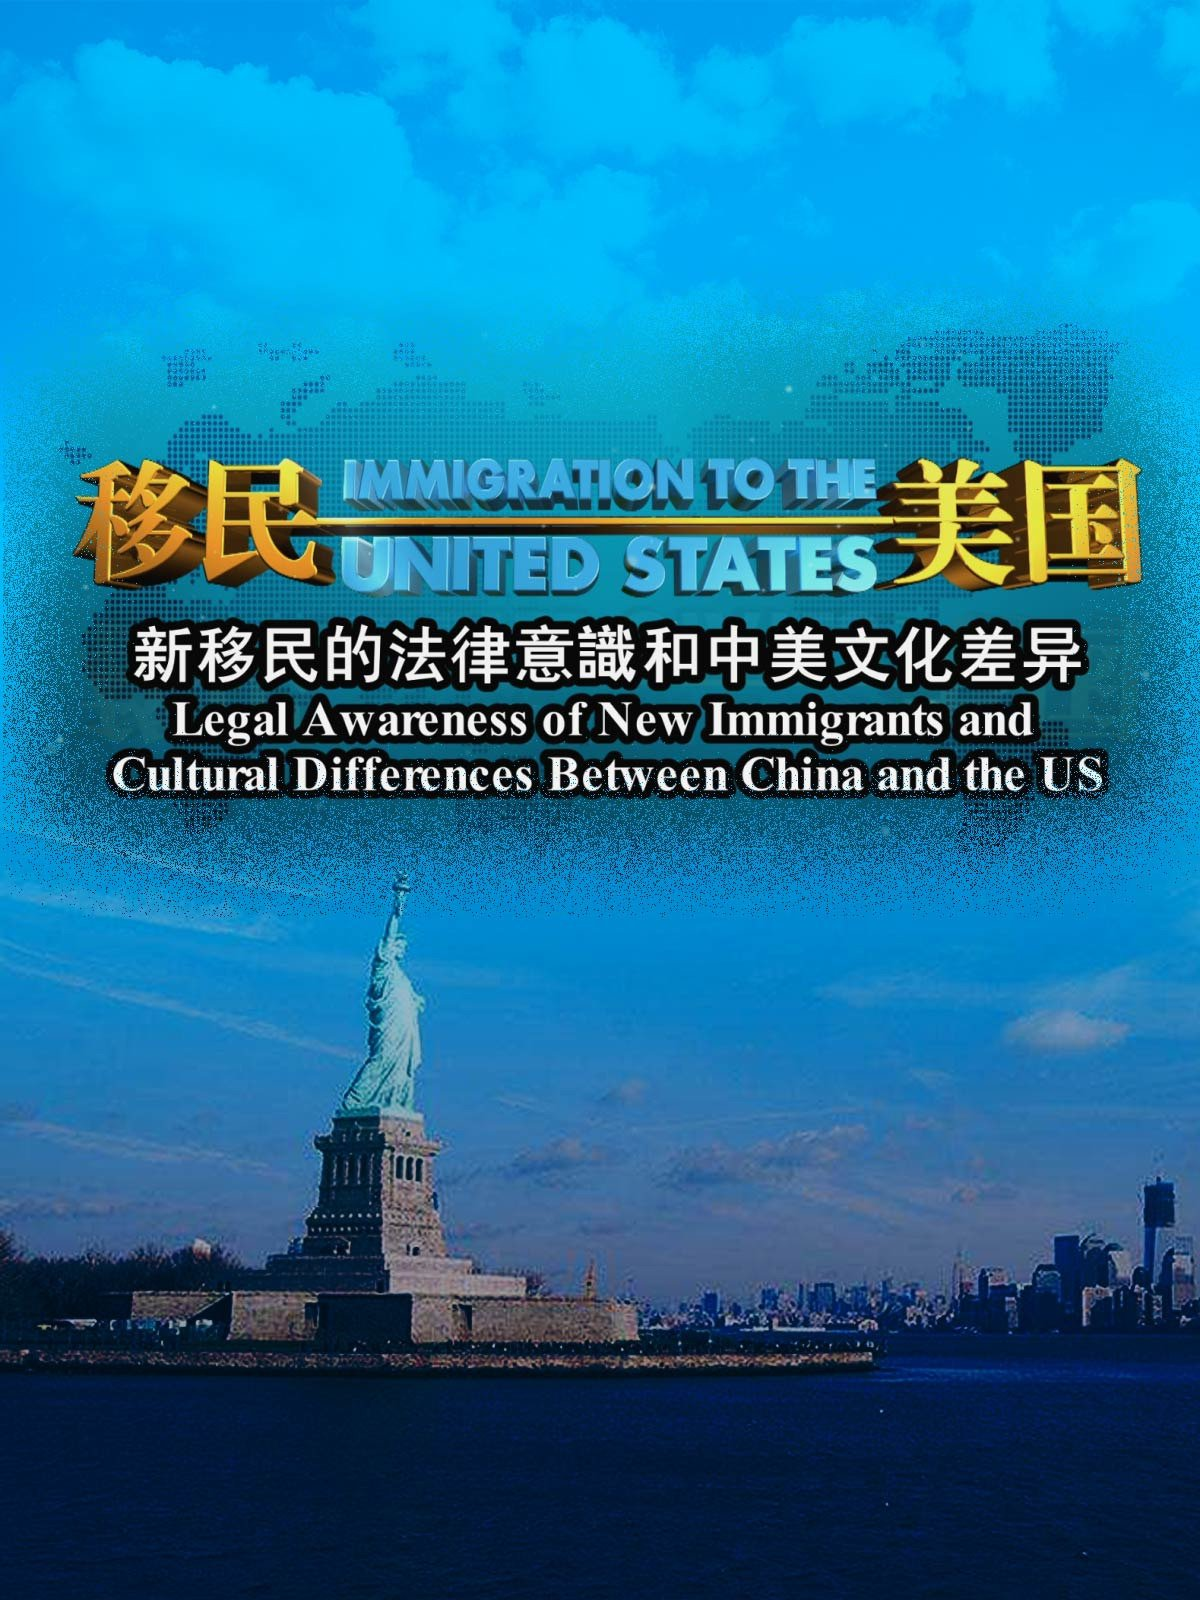 Immigration to the United States-Legal Awareness of New Immigrants and Cultural Differences Between China and the US